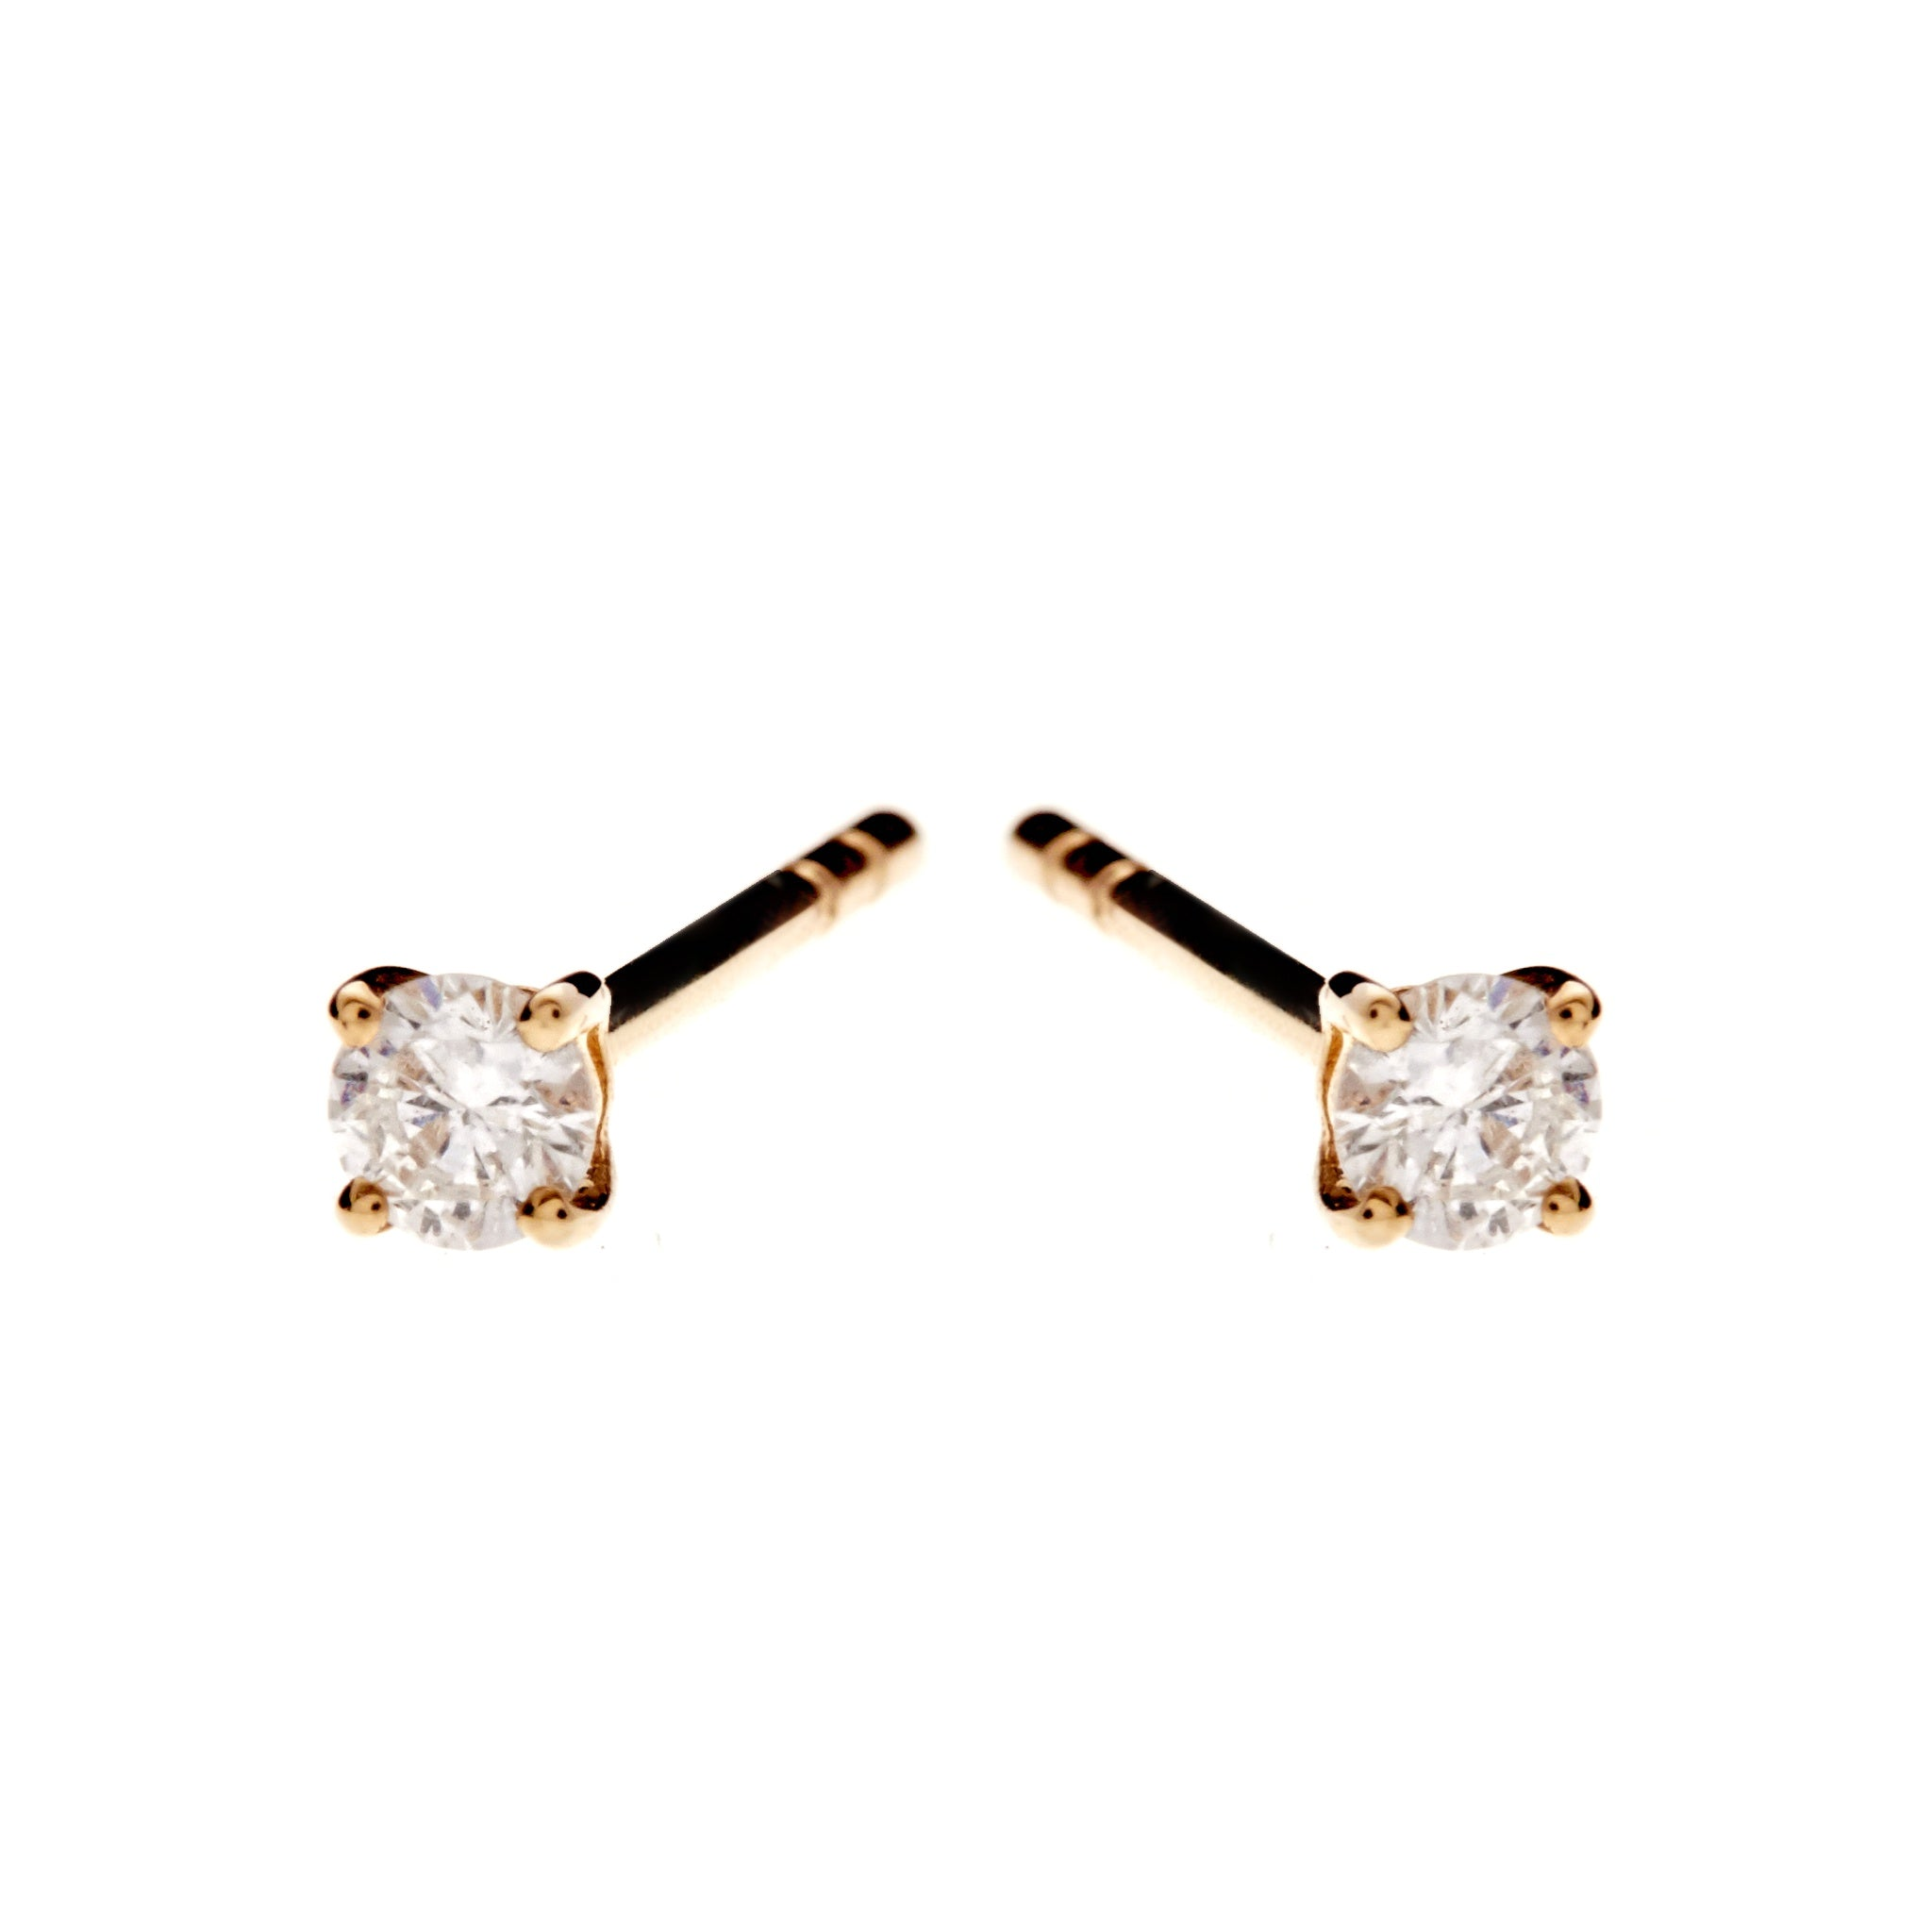 9K Gold Claw-Set Diamond Stud Earrings